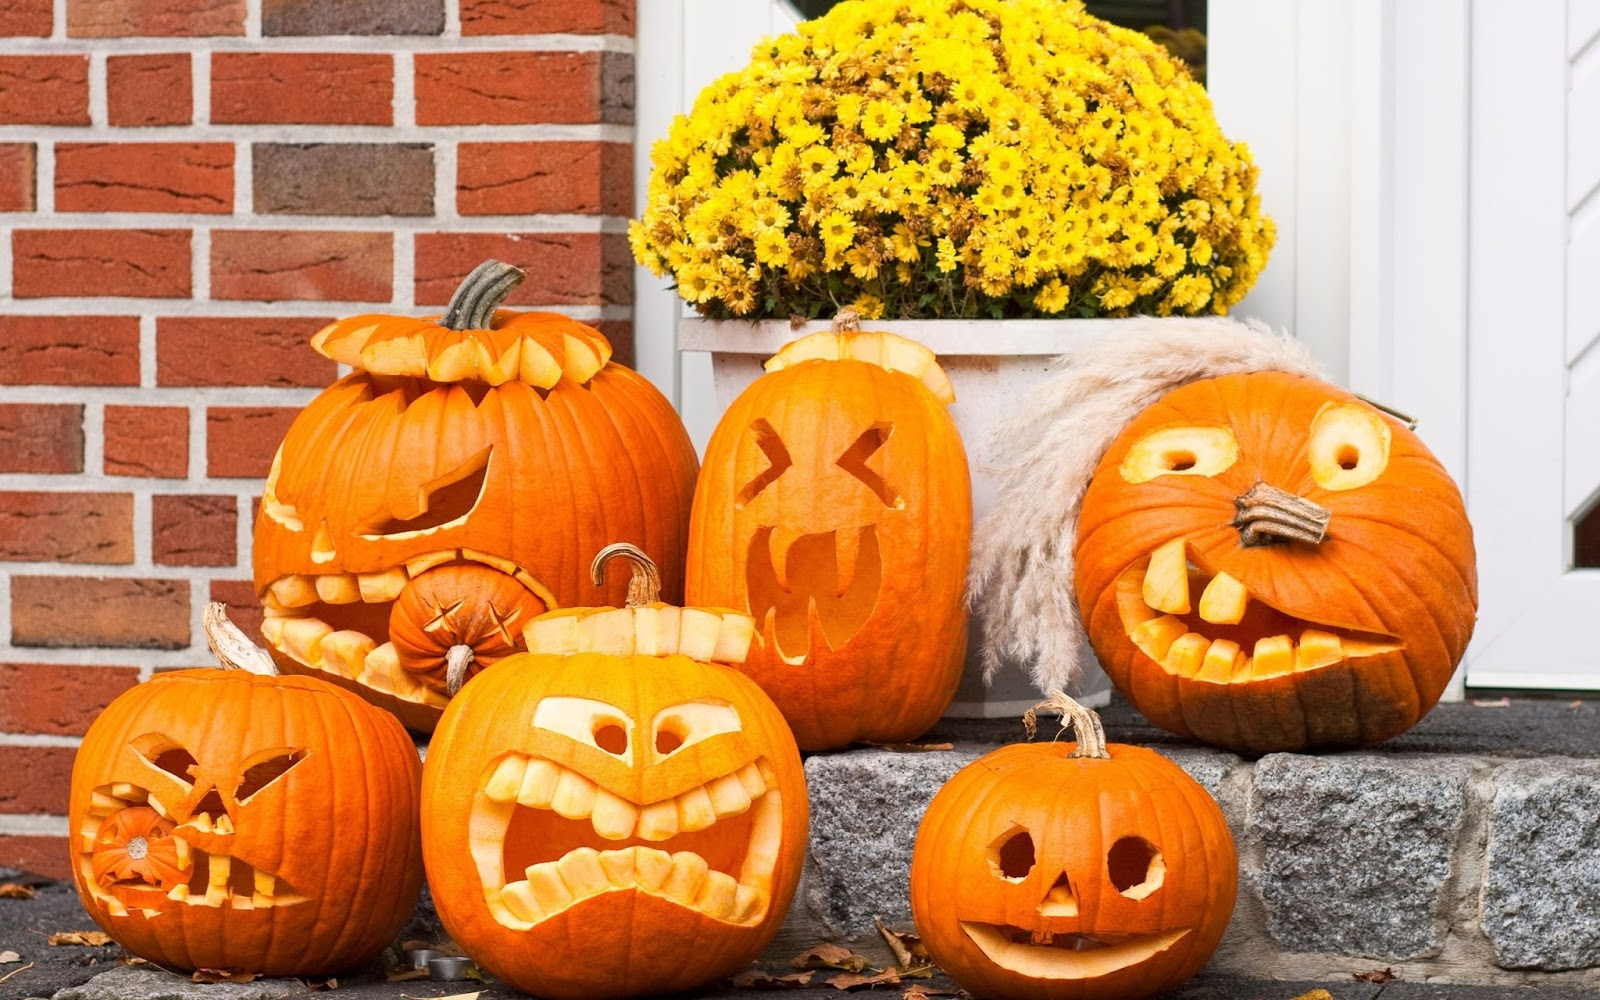 Pumpkin Carving Ideas for Halloween 2018: More Great ...